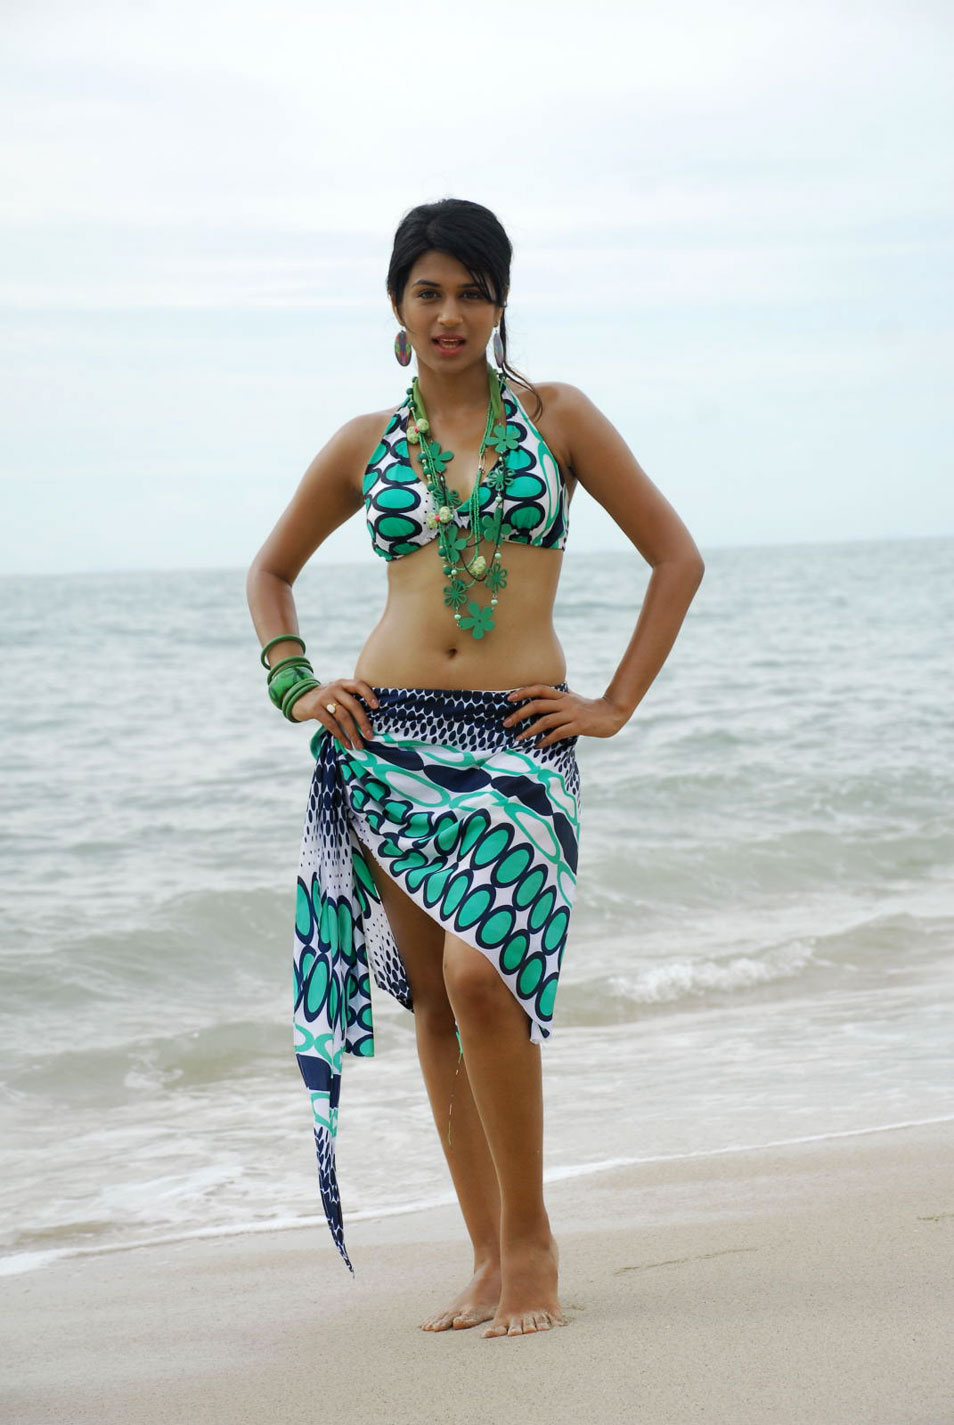 shraddha das new spicy from mugguru movie, shraddha das hot images